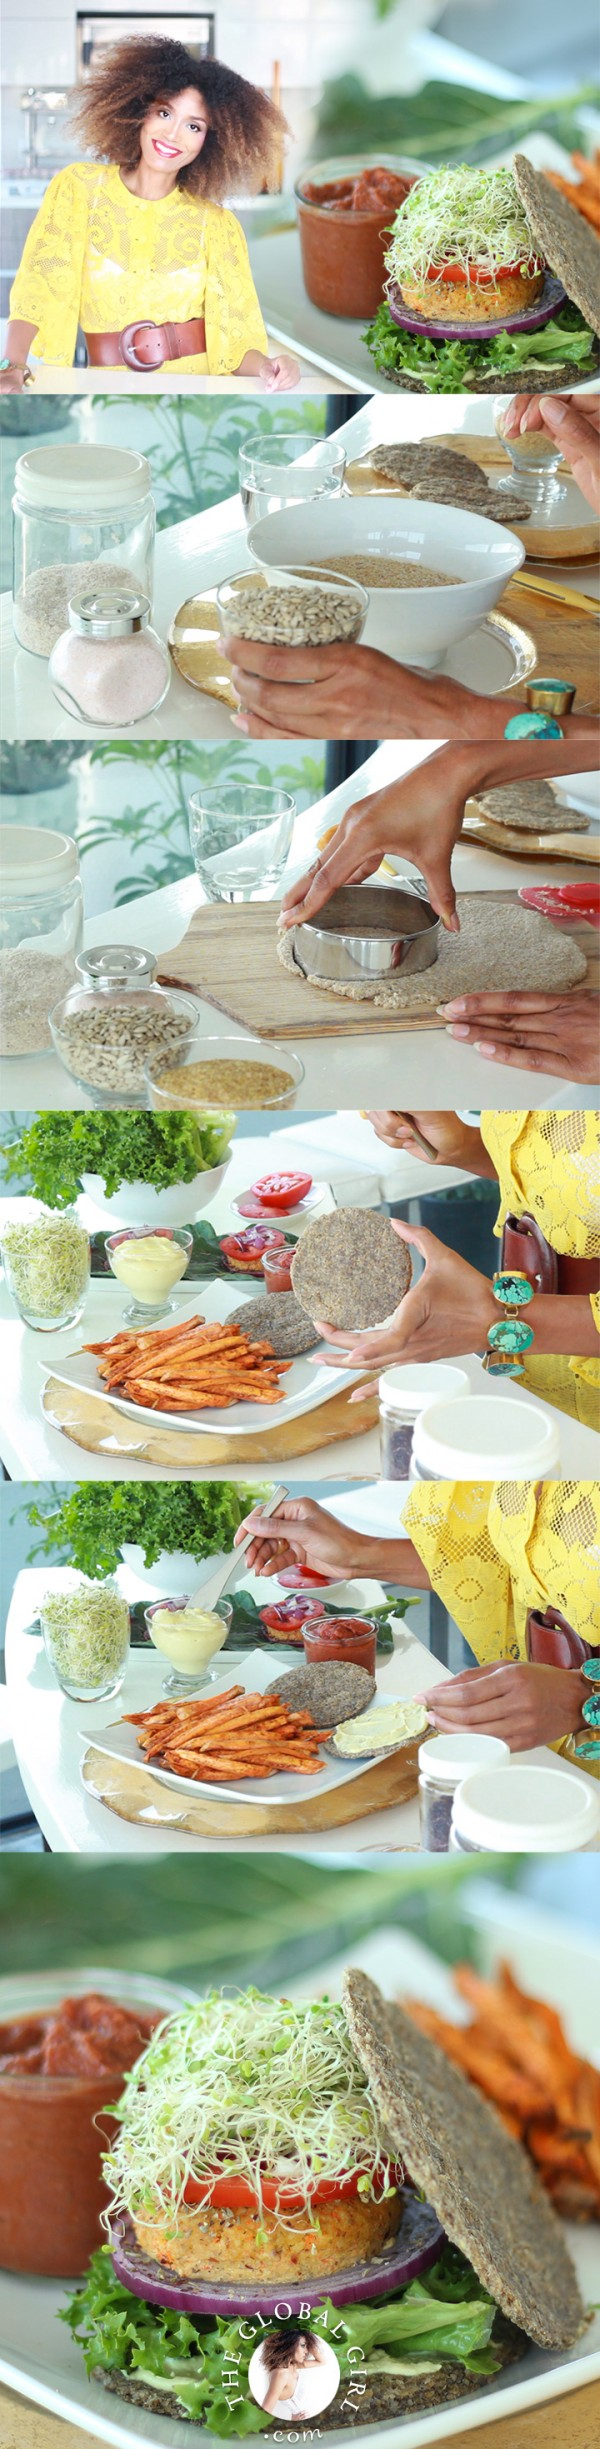 Raw vegan burger buns by ndoema epicurious community table the global girl raw recipes ndoema shares her super simple nut free oil forumfinder Images